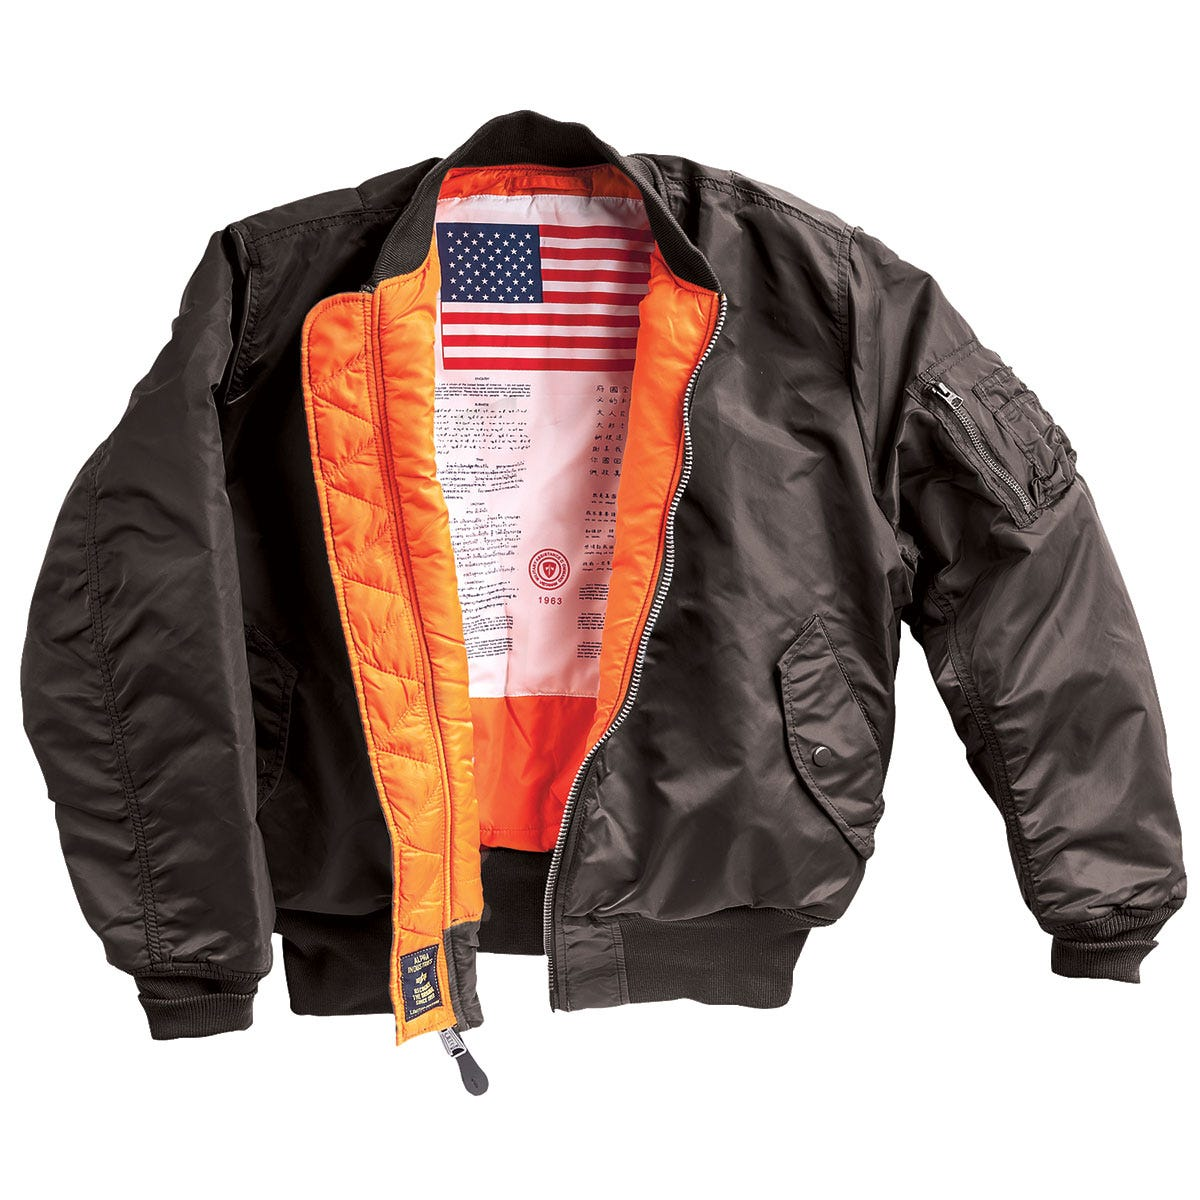 MA-1 Flight Jacket with Blood Chit - from Sporty's Wright Bros ...